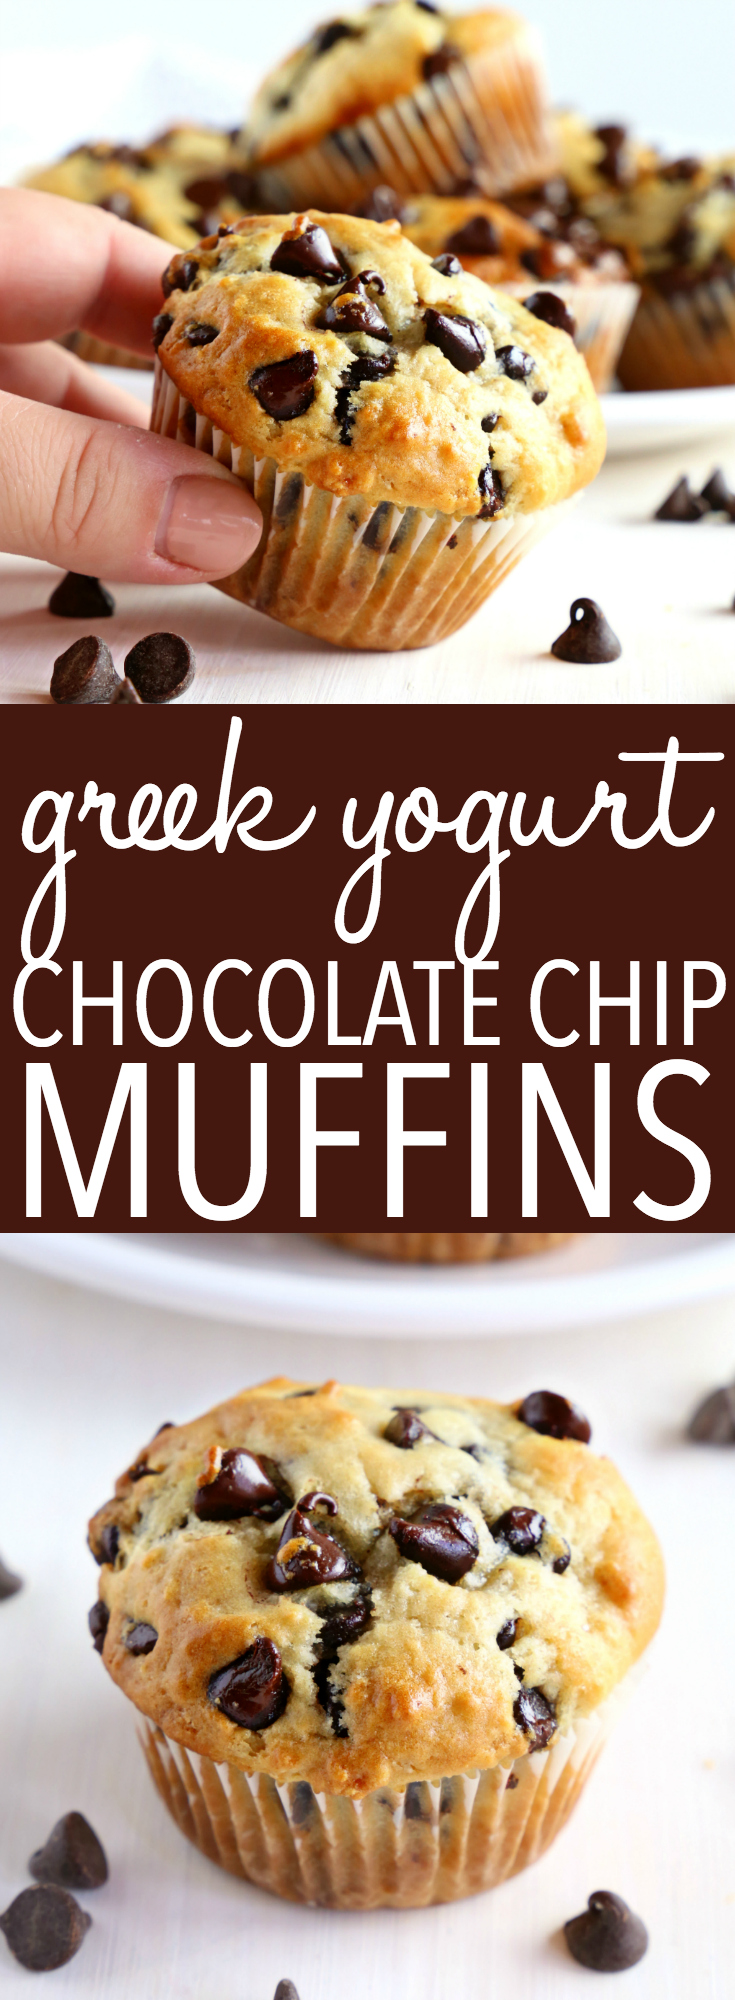 These Best Ever Greek Yogurt Chocolate Chip Muffins are the perfect low-fat sweet snack made with Greek yogurt! They're quick and easy to make, and they're perfectly moist and tender! Recipe from thebusybaker.ca! #muffins #easy #recipe #chocolatechip #chocolate #homemade #bestever #bestmuffins #sweet #treat #dessert #breakfast #lowfat via @busybakerblog